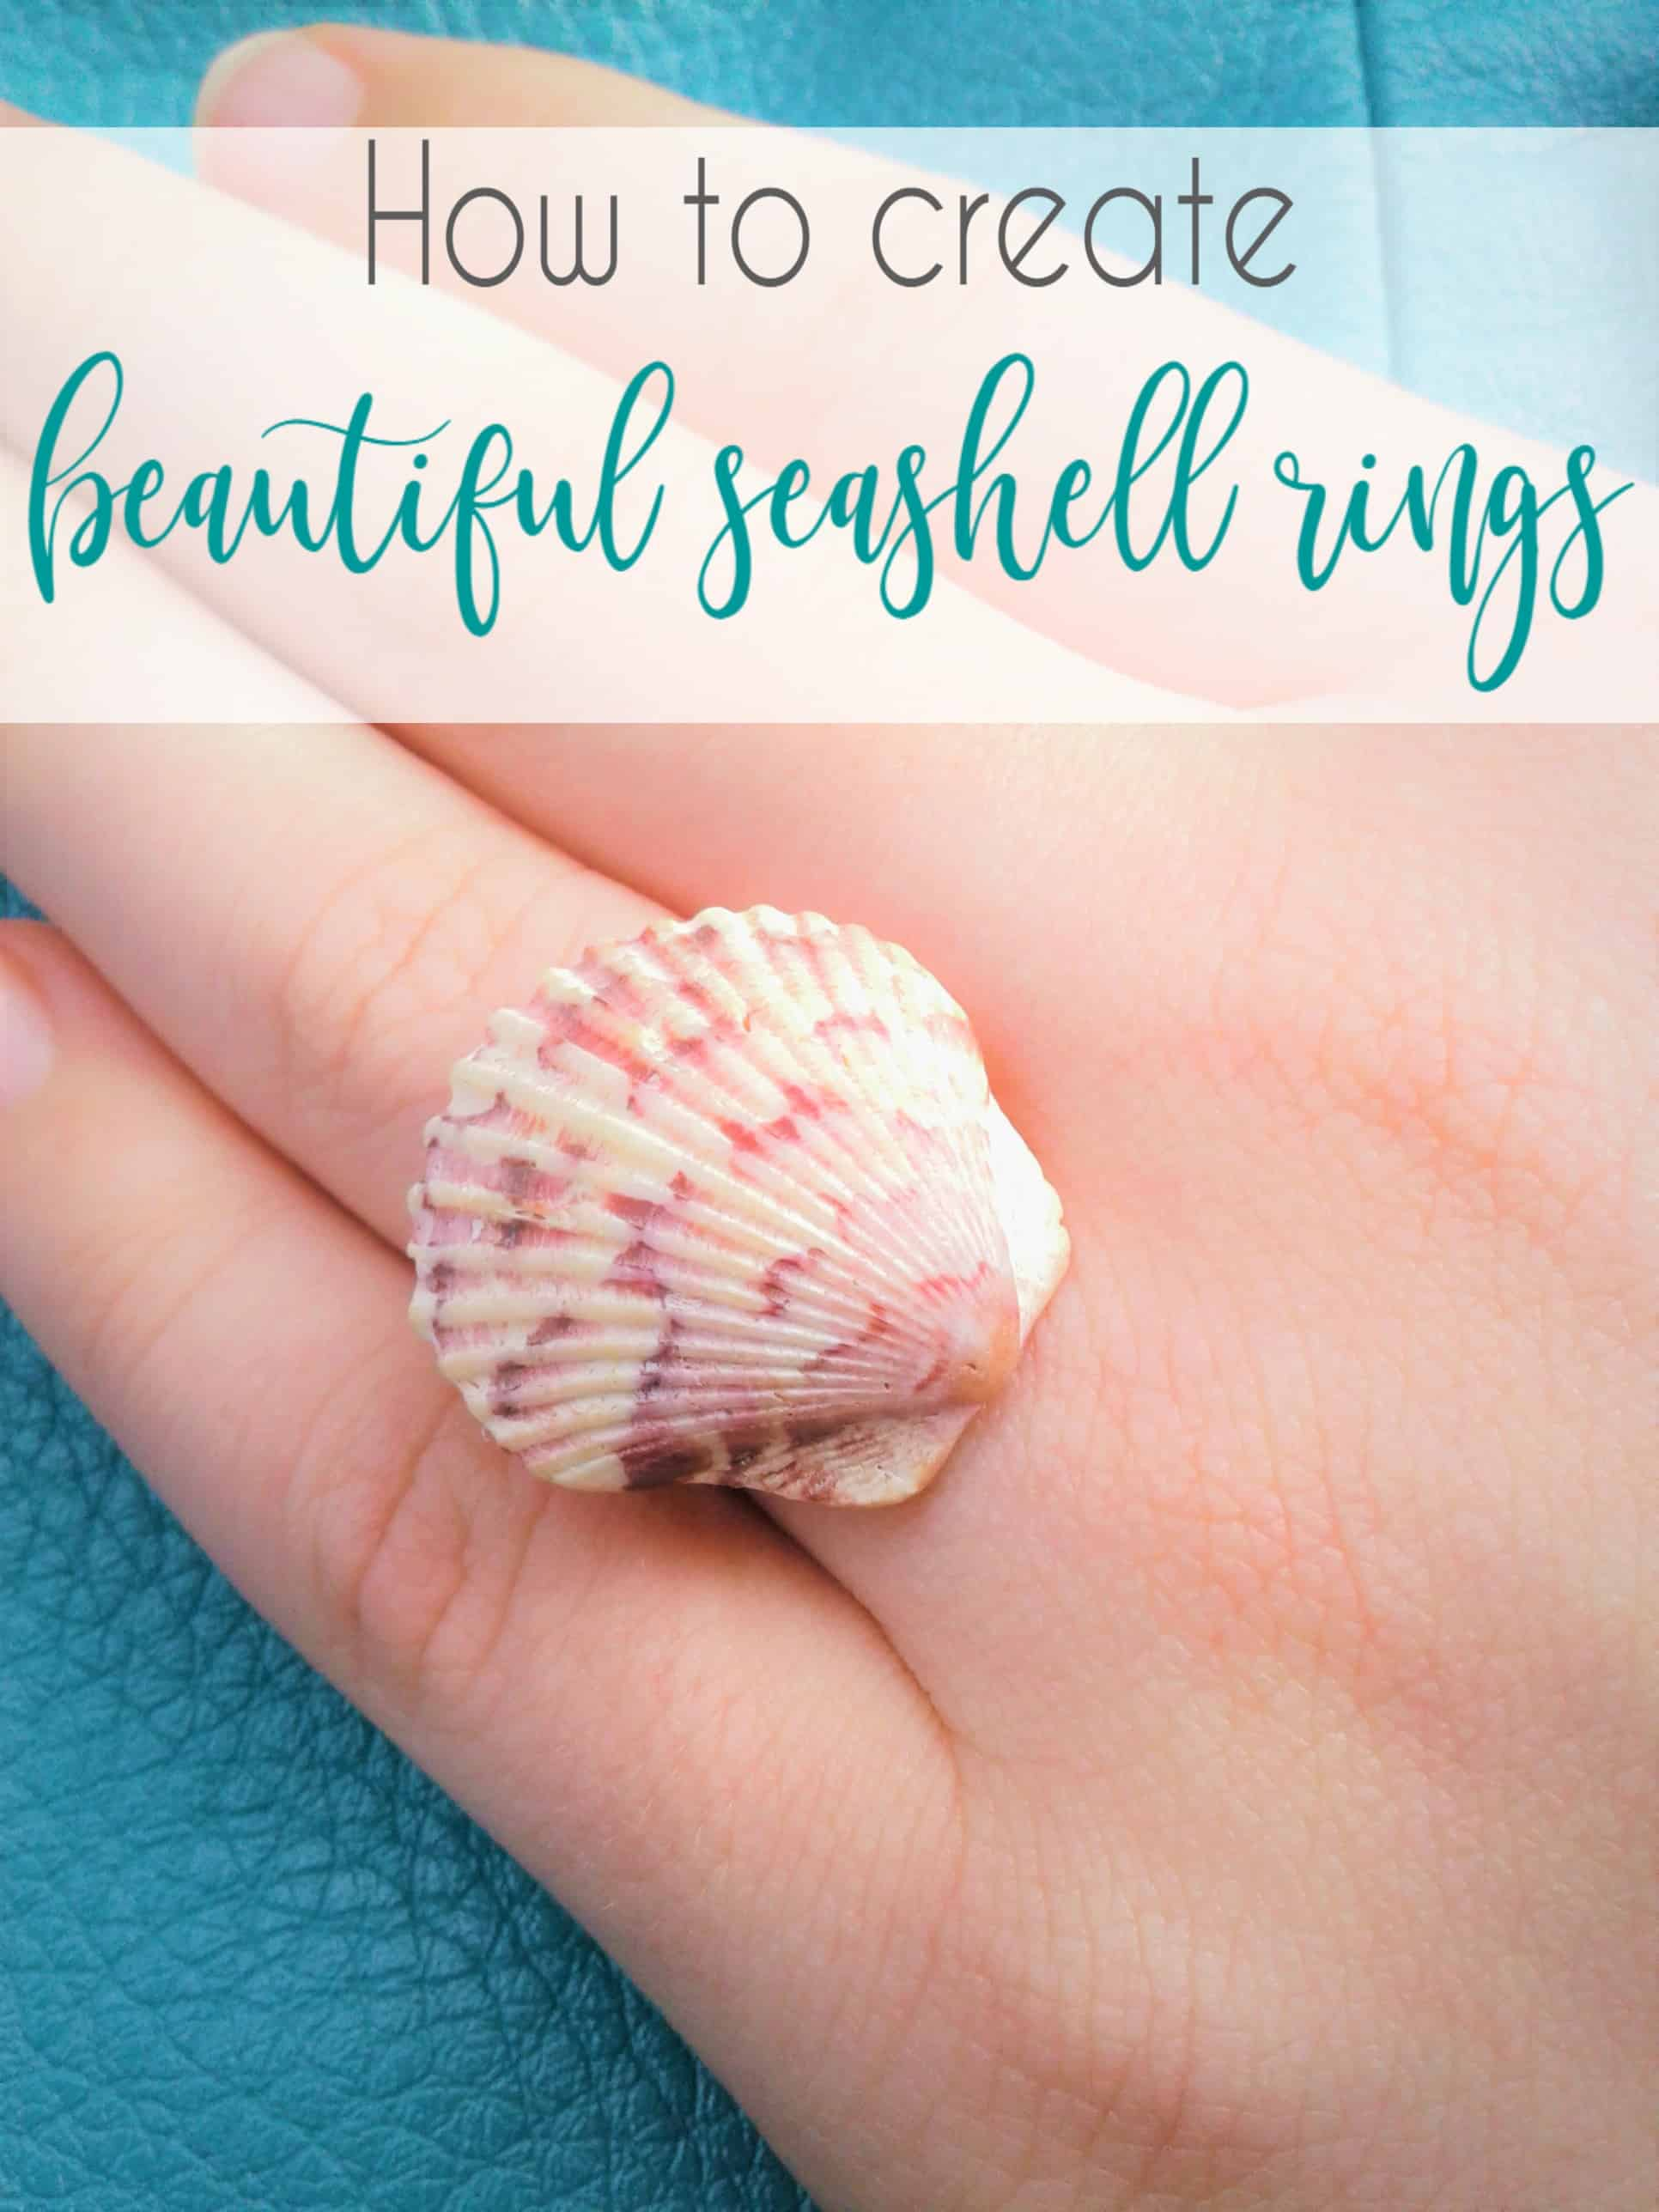 Diy seashell rings